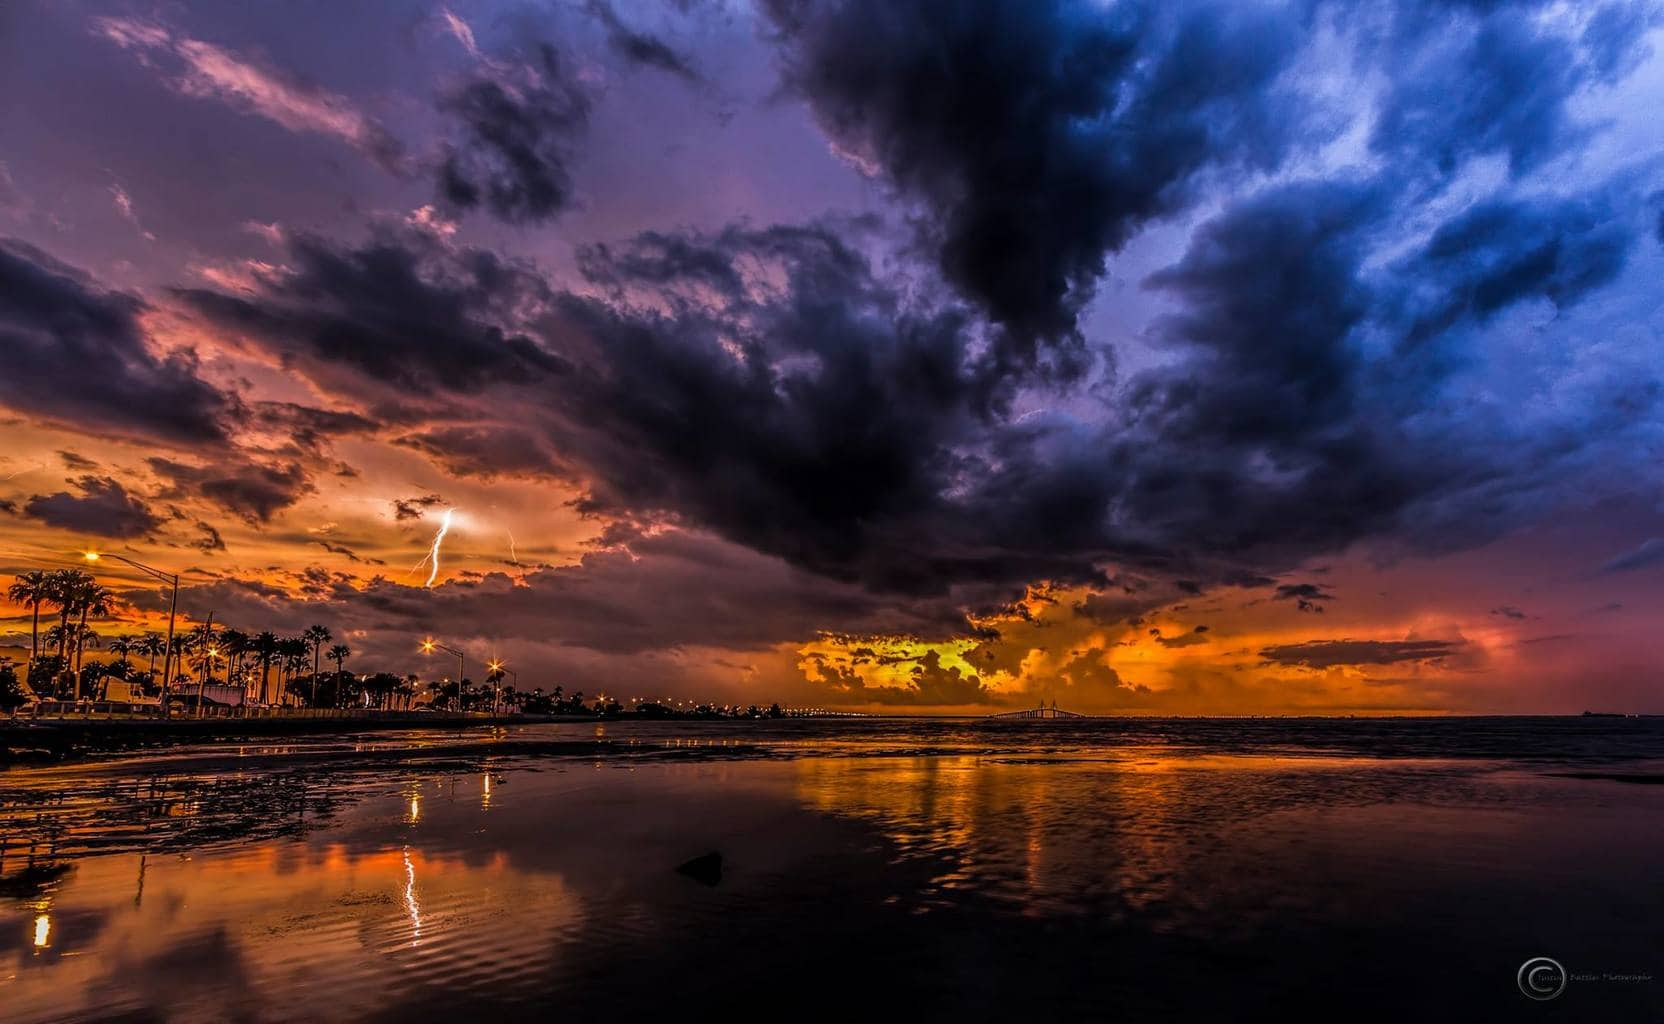 Going through my time lapse sets from last summer till finally trying to piece one together and found this decent strike with amazing color. Only about 25,000 photos to edit and organize, lol. Anyway found this from 3 storms I caught moving through one sunset time lapse over Tampa Bay, Florida 6-30-14.